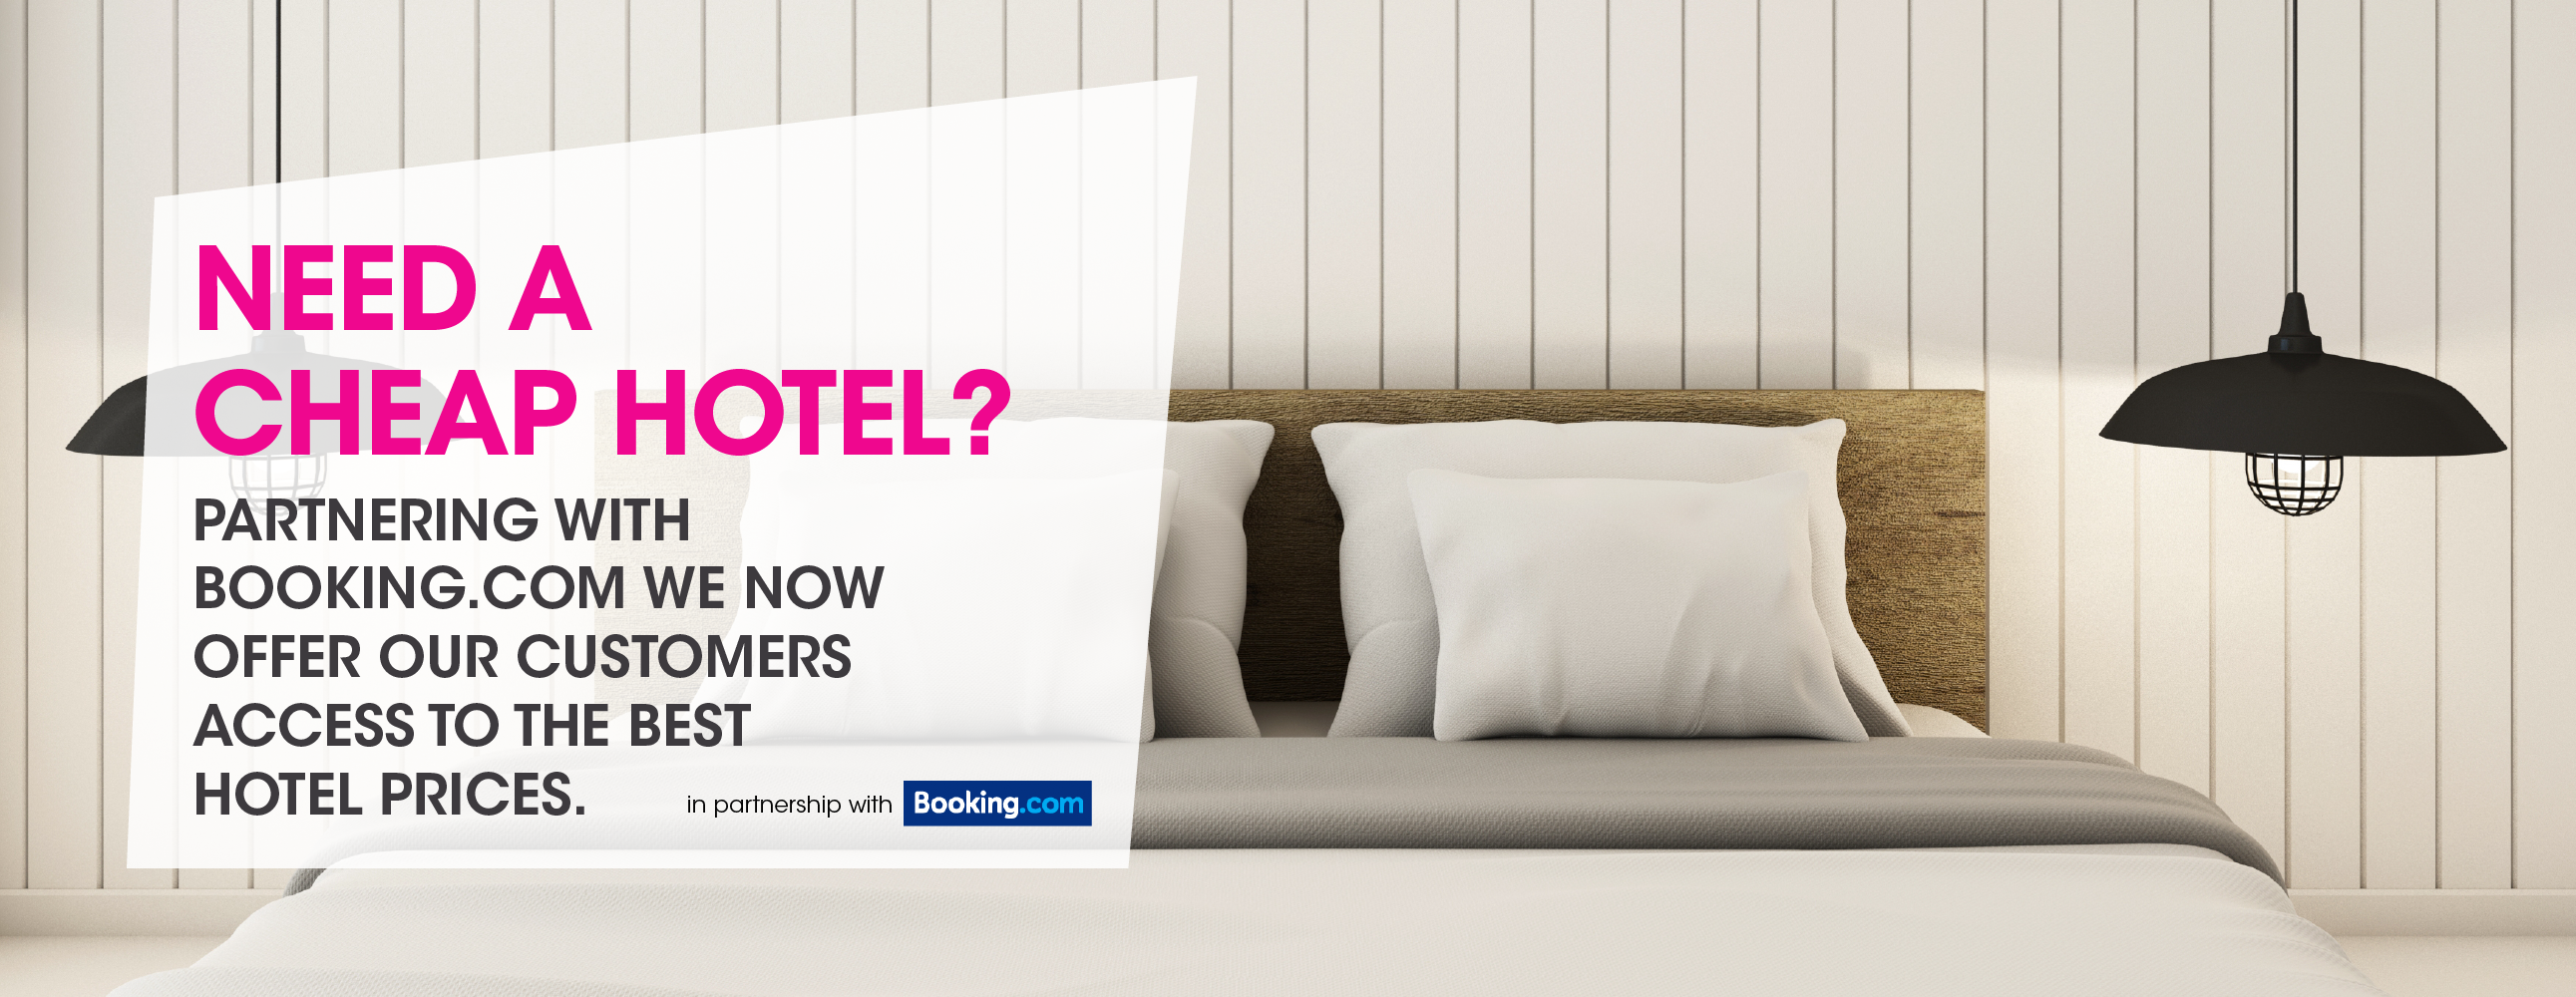 FlySafair Cheap Hotel